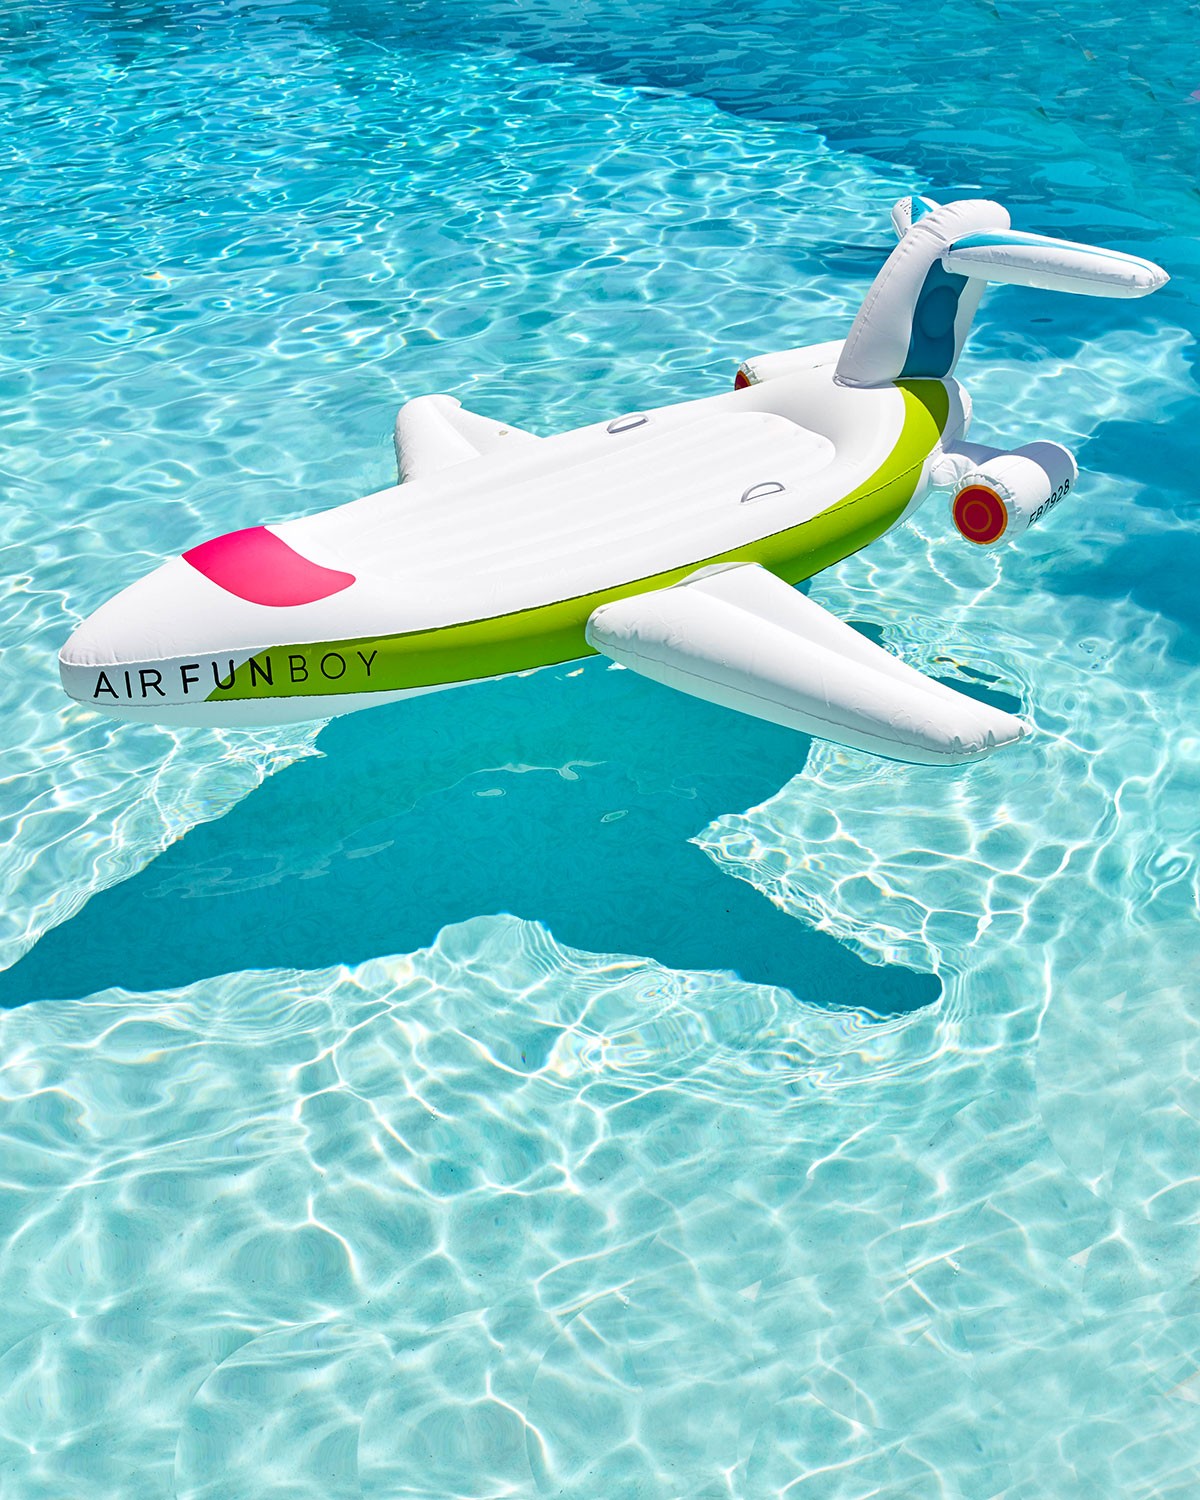 Private Jet Pool Float